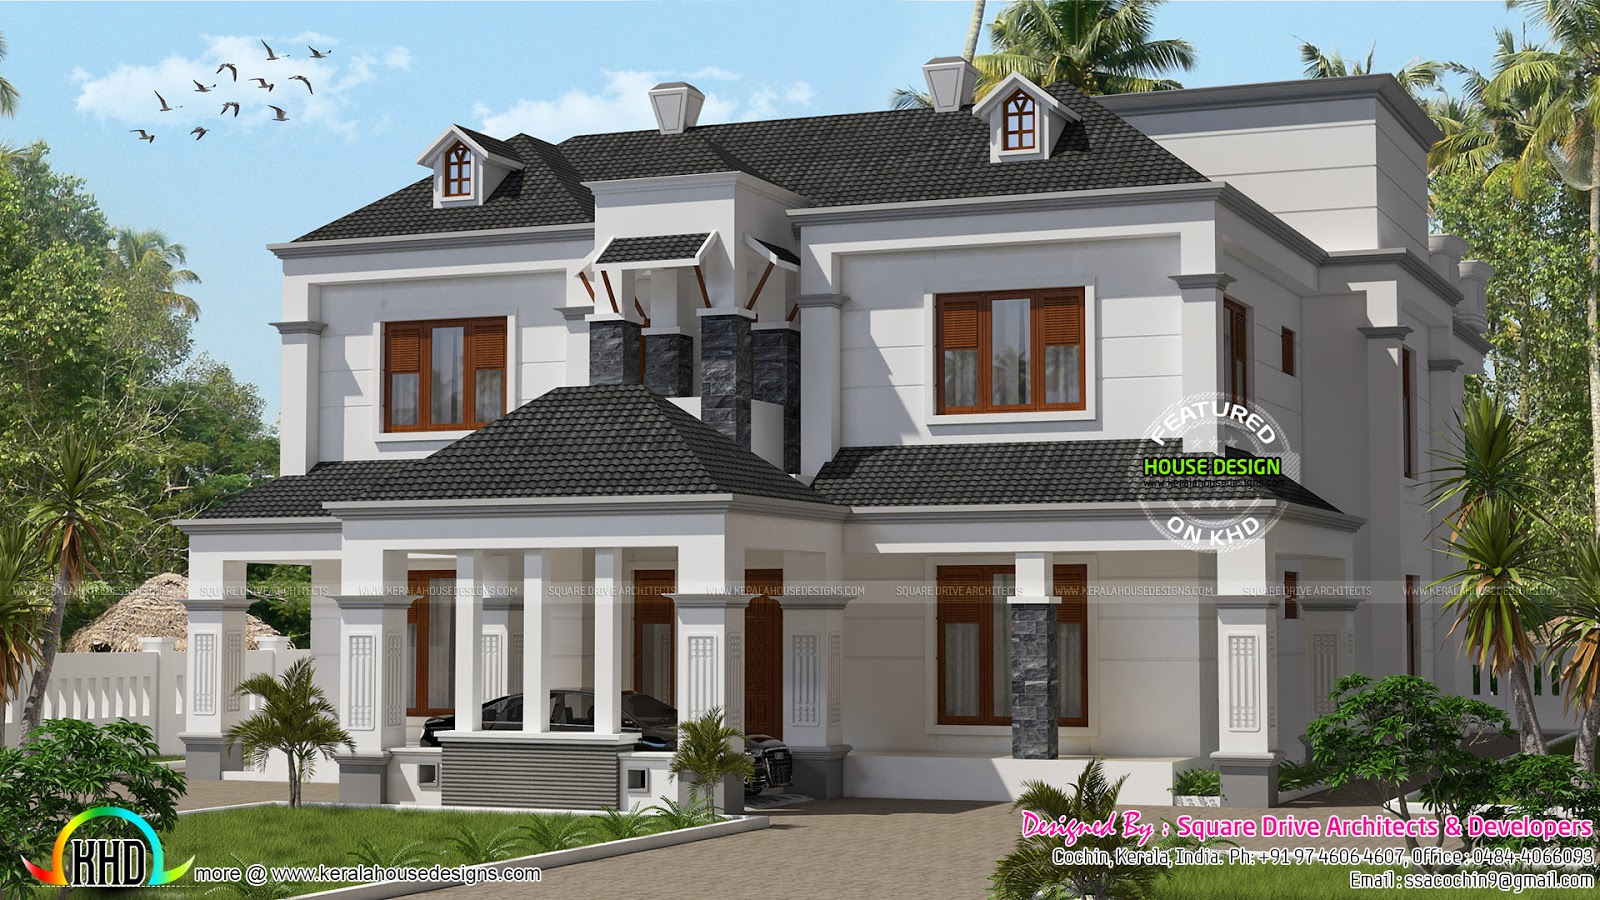 Colonial model 3834 sq ft home kerala home design for Mobel kolonial style